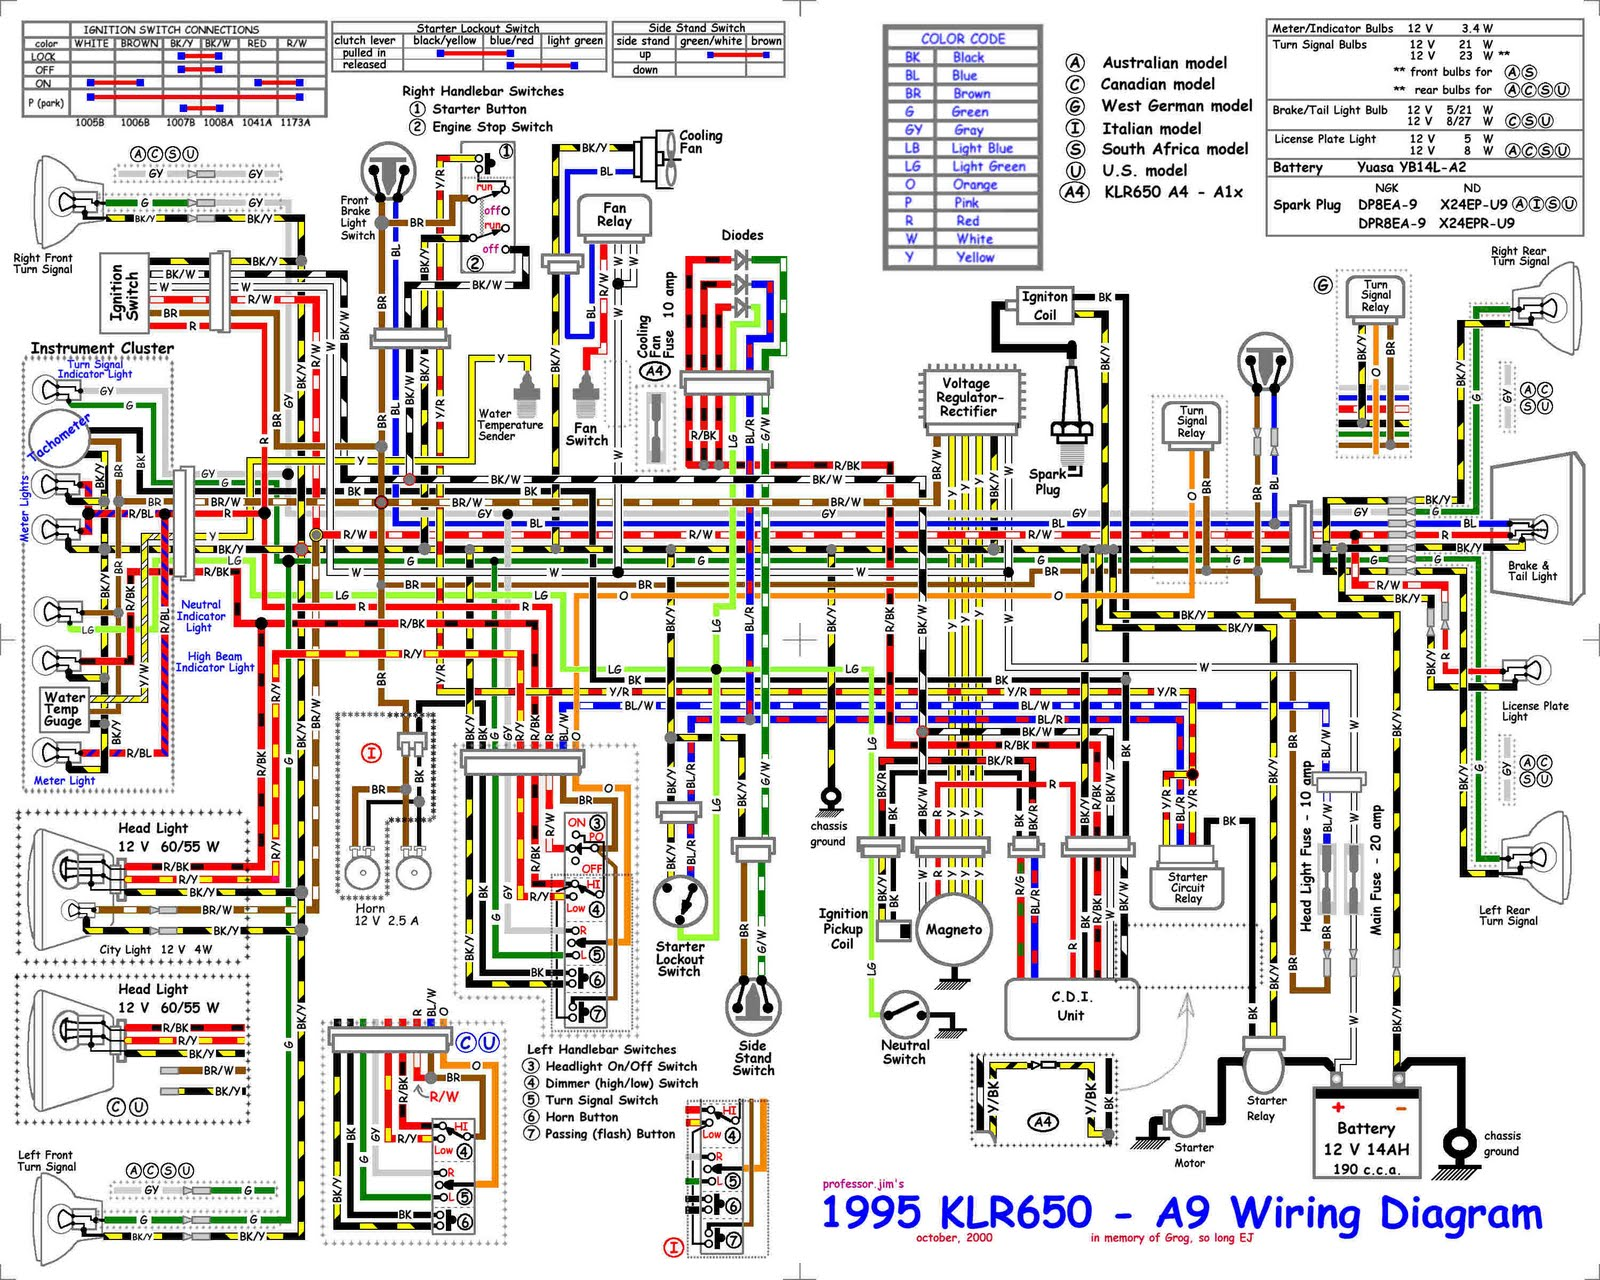 1974 monte carlo wiring diagram 1998 wiring diagram monte carlo 28 images wiring diagram for 1972 Monte Carlo Wiring Diagram at gsmx.co